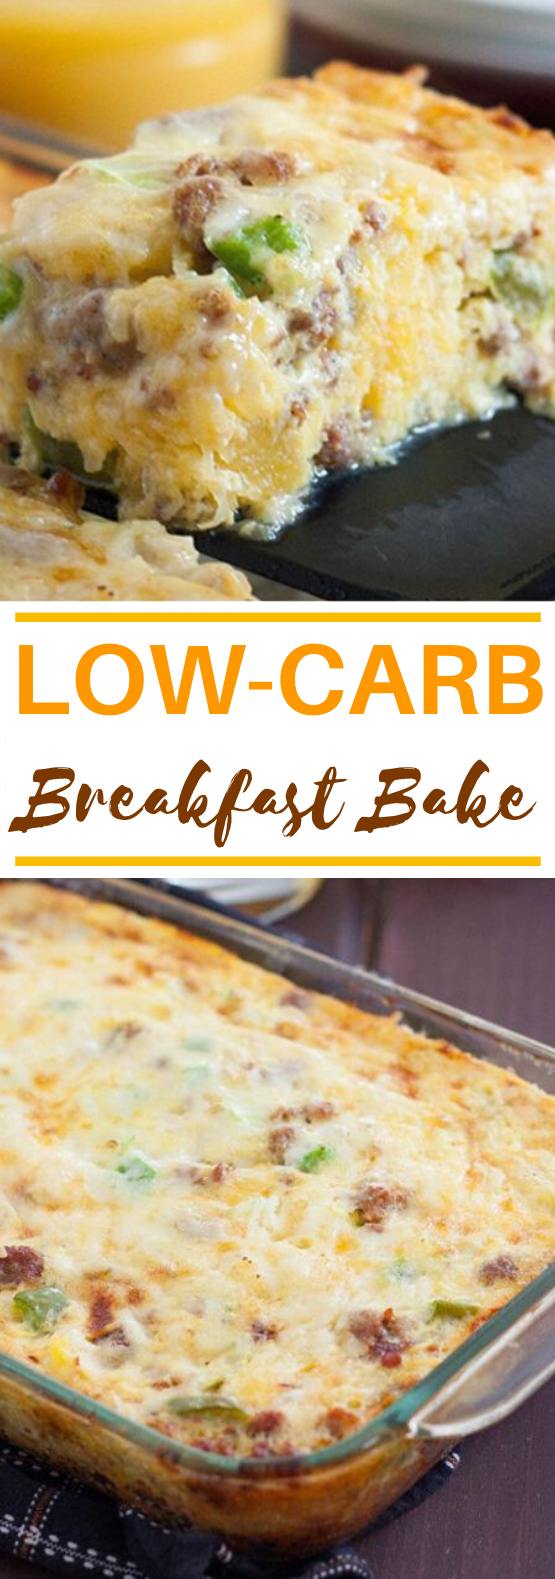 Low Carb Breakfast Bake #lowcarb #healthy #keto #breakfast #casserole